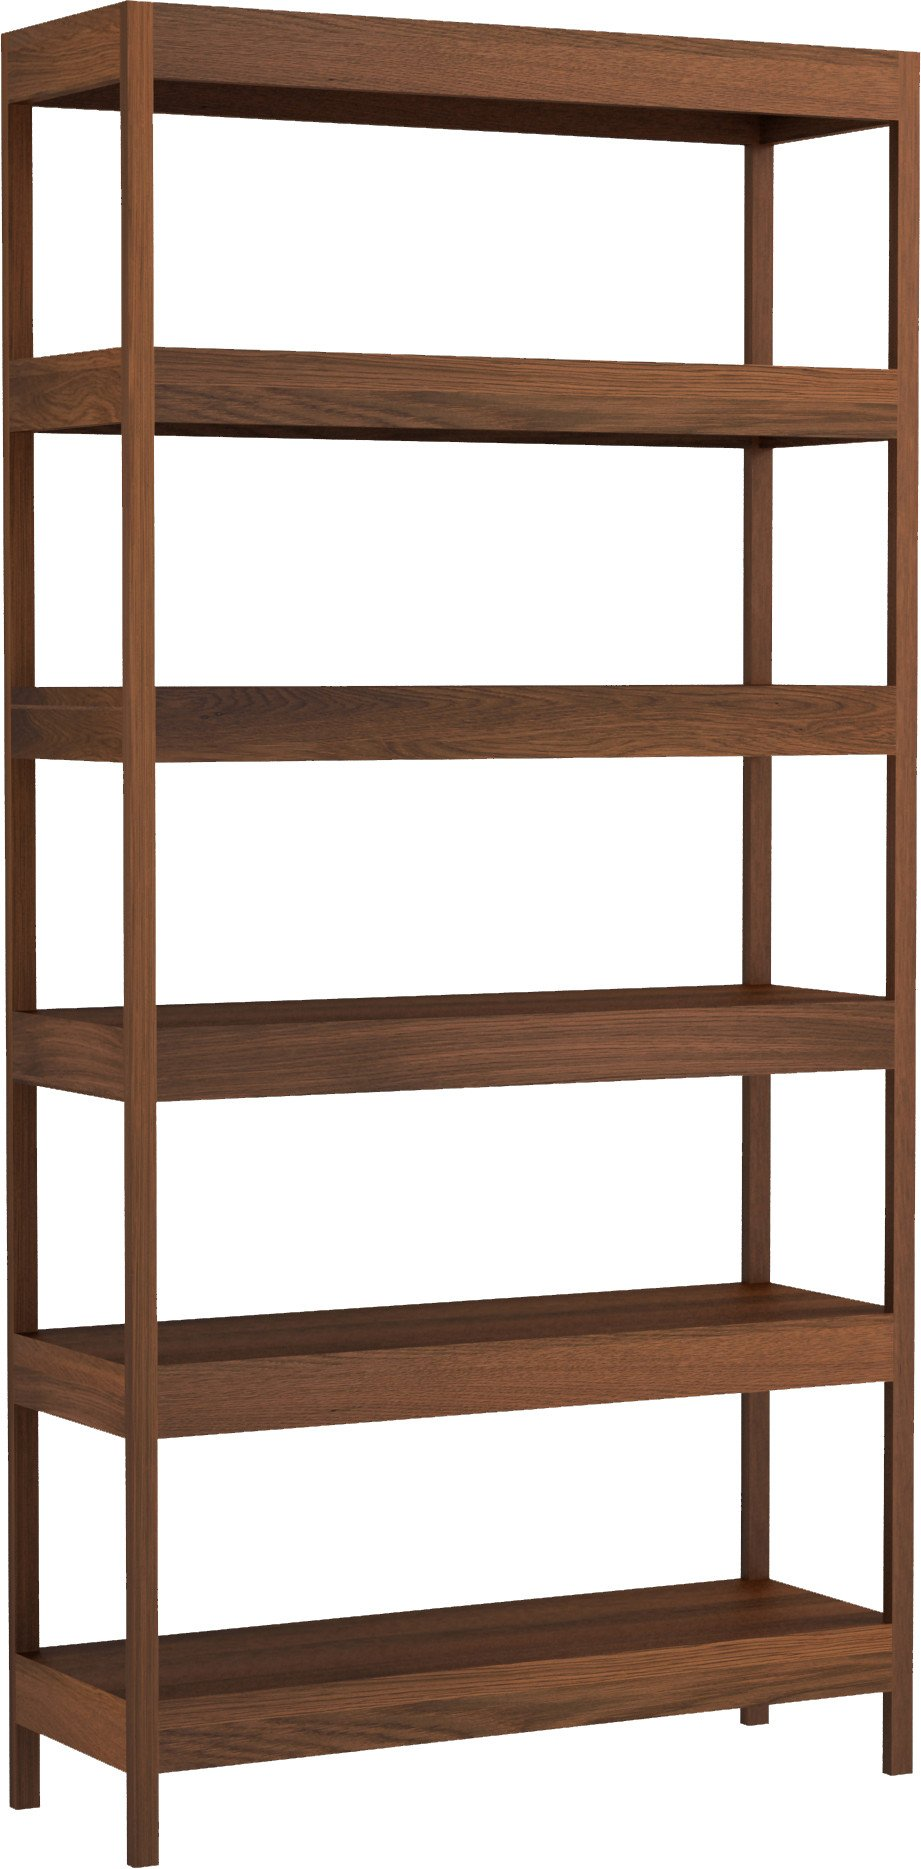 Fatty Bookcase 100 Dark Oak Oil Wax, Tamo